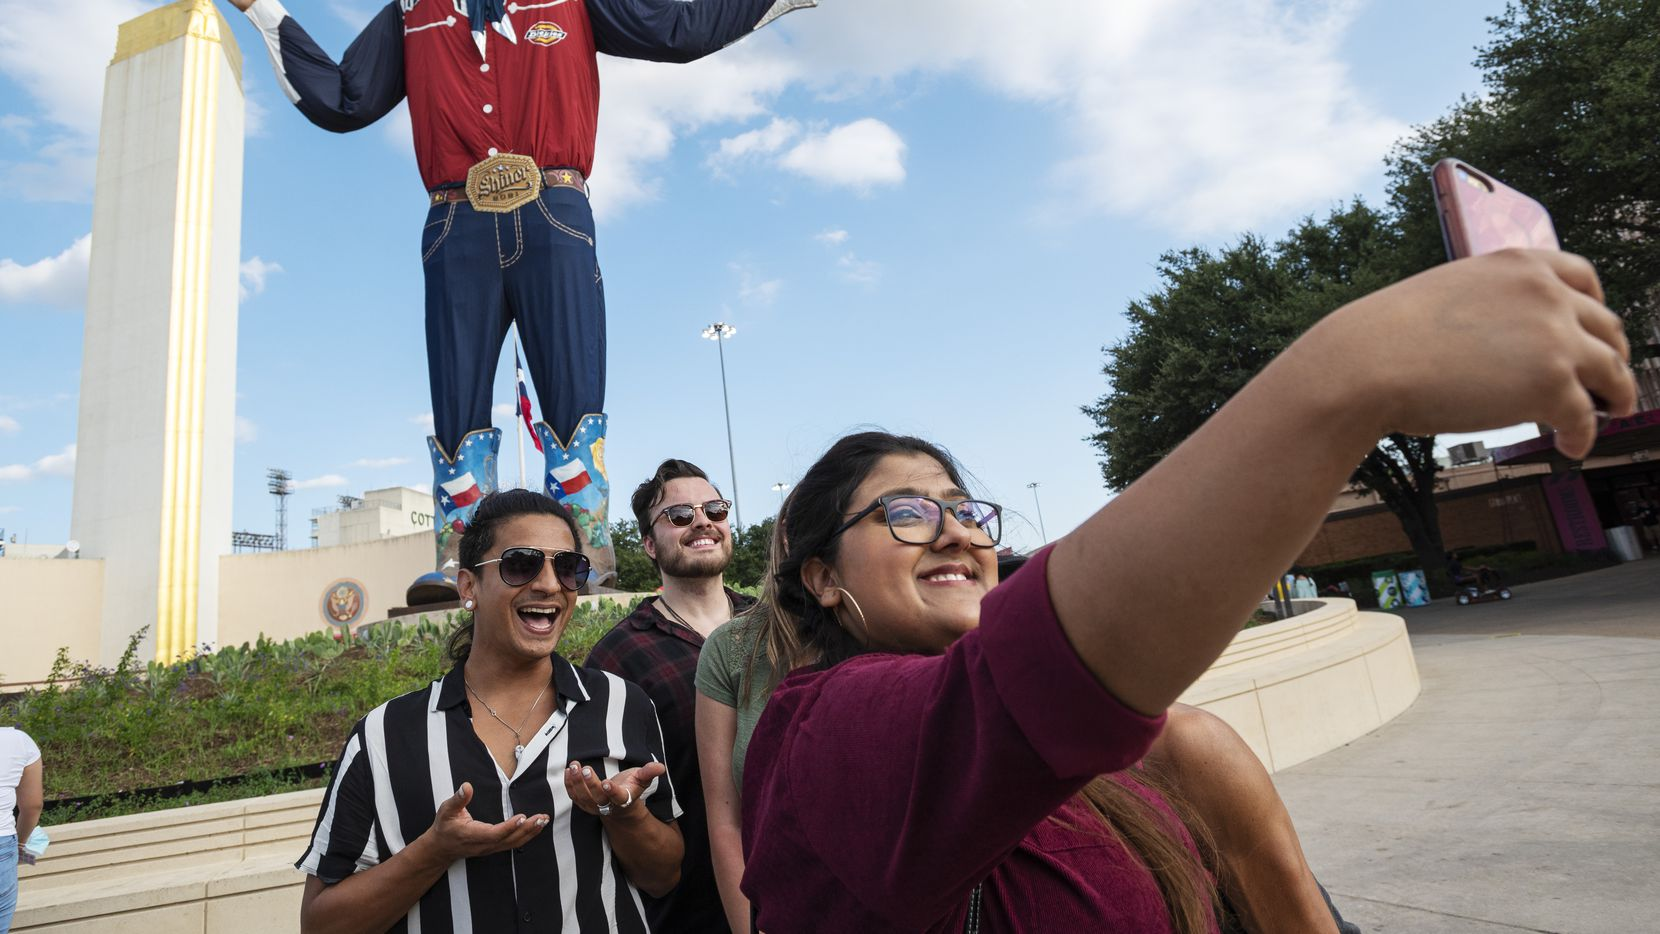 Nehan Farhat, 24, takes a selfie with a group of friends including Carlos Valdez, 34, left, and Dylan Bartlett, 27, center, as they celebrated her first time at the State Fair of Texas, on Sept. 29, 2021 at Fair Park in Dallas.